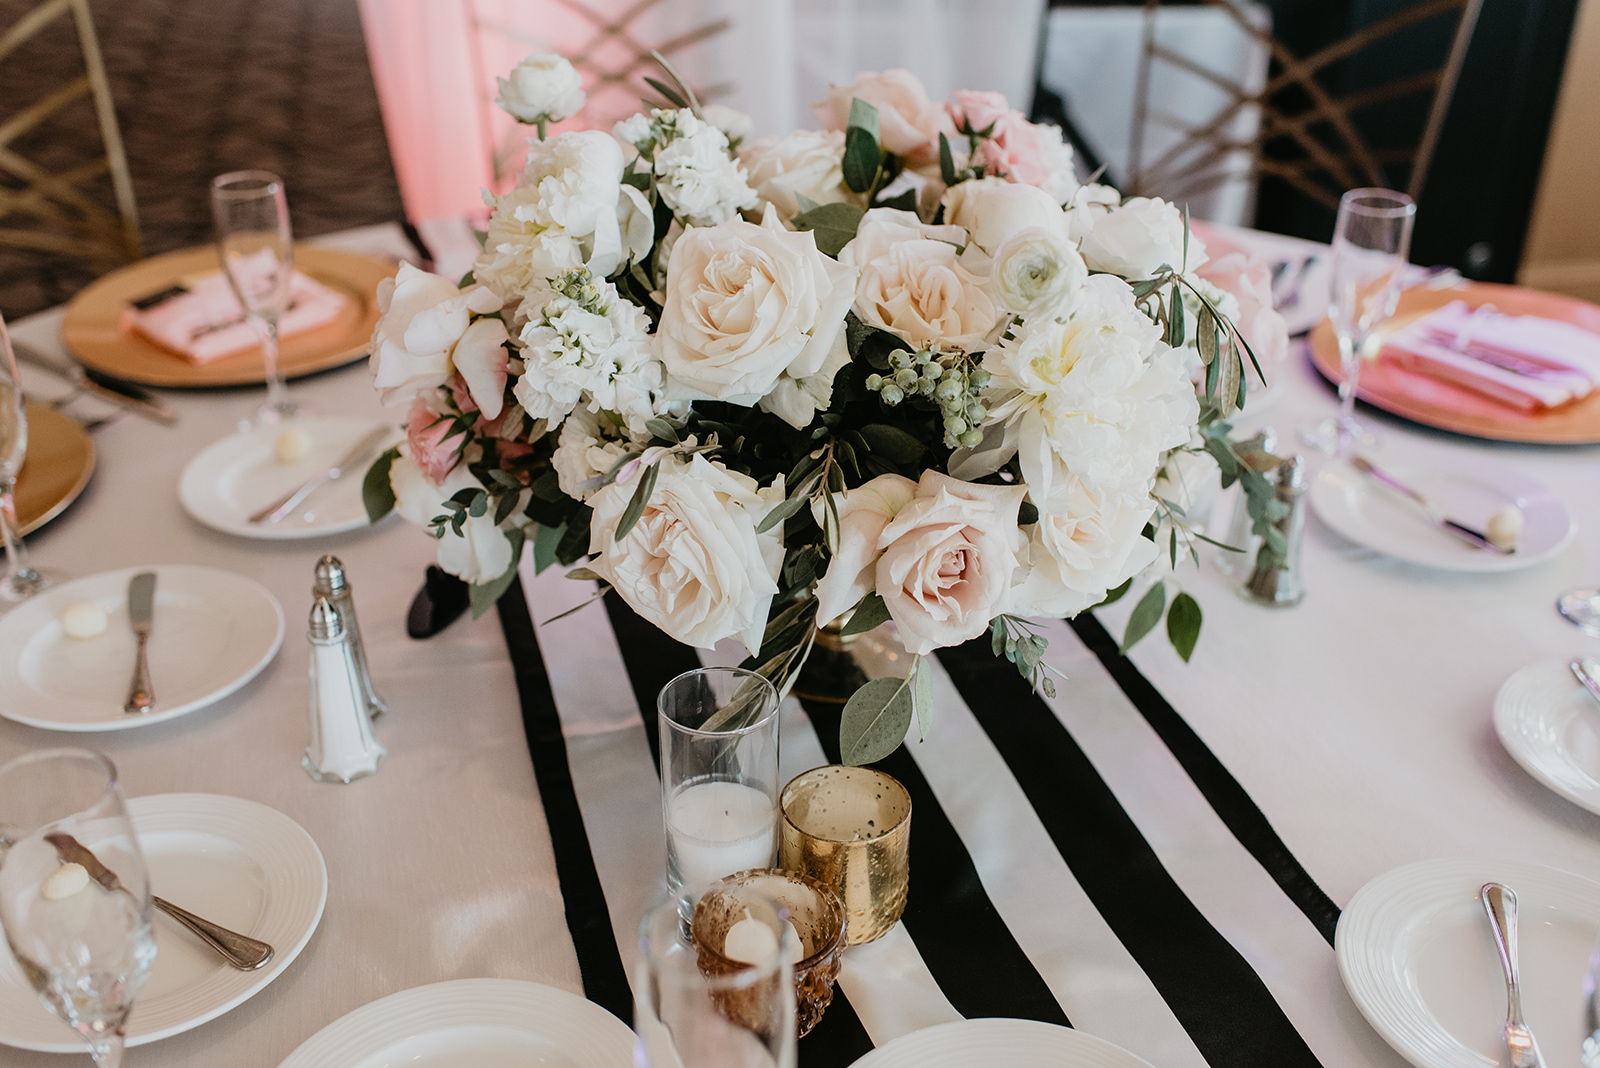 Fragoso Wedding in Las Vegas, NV - Table Decor